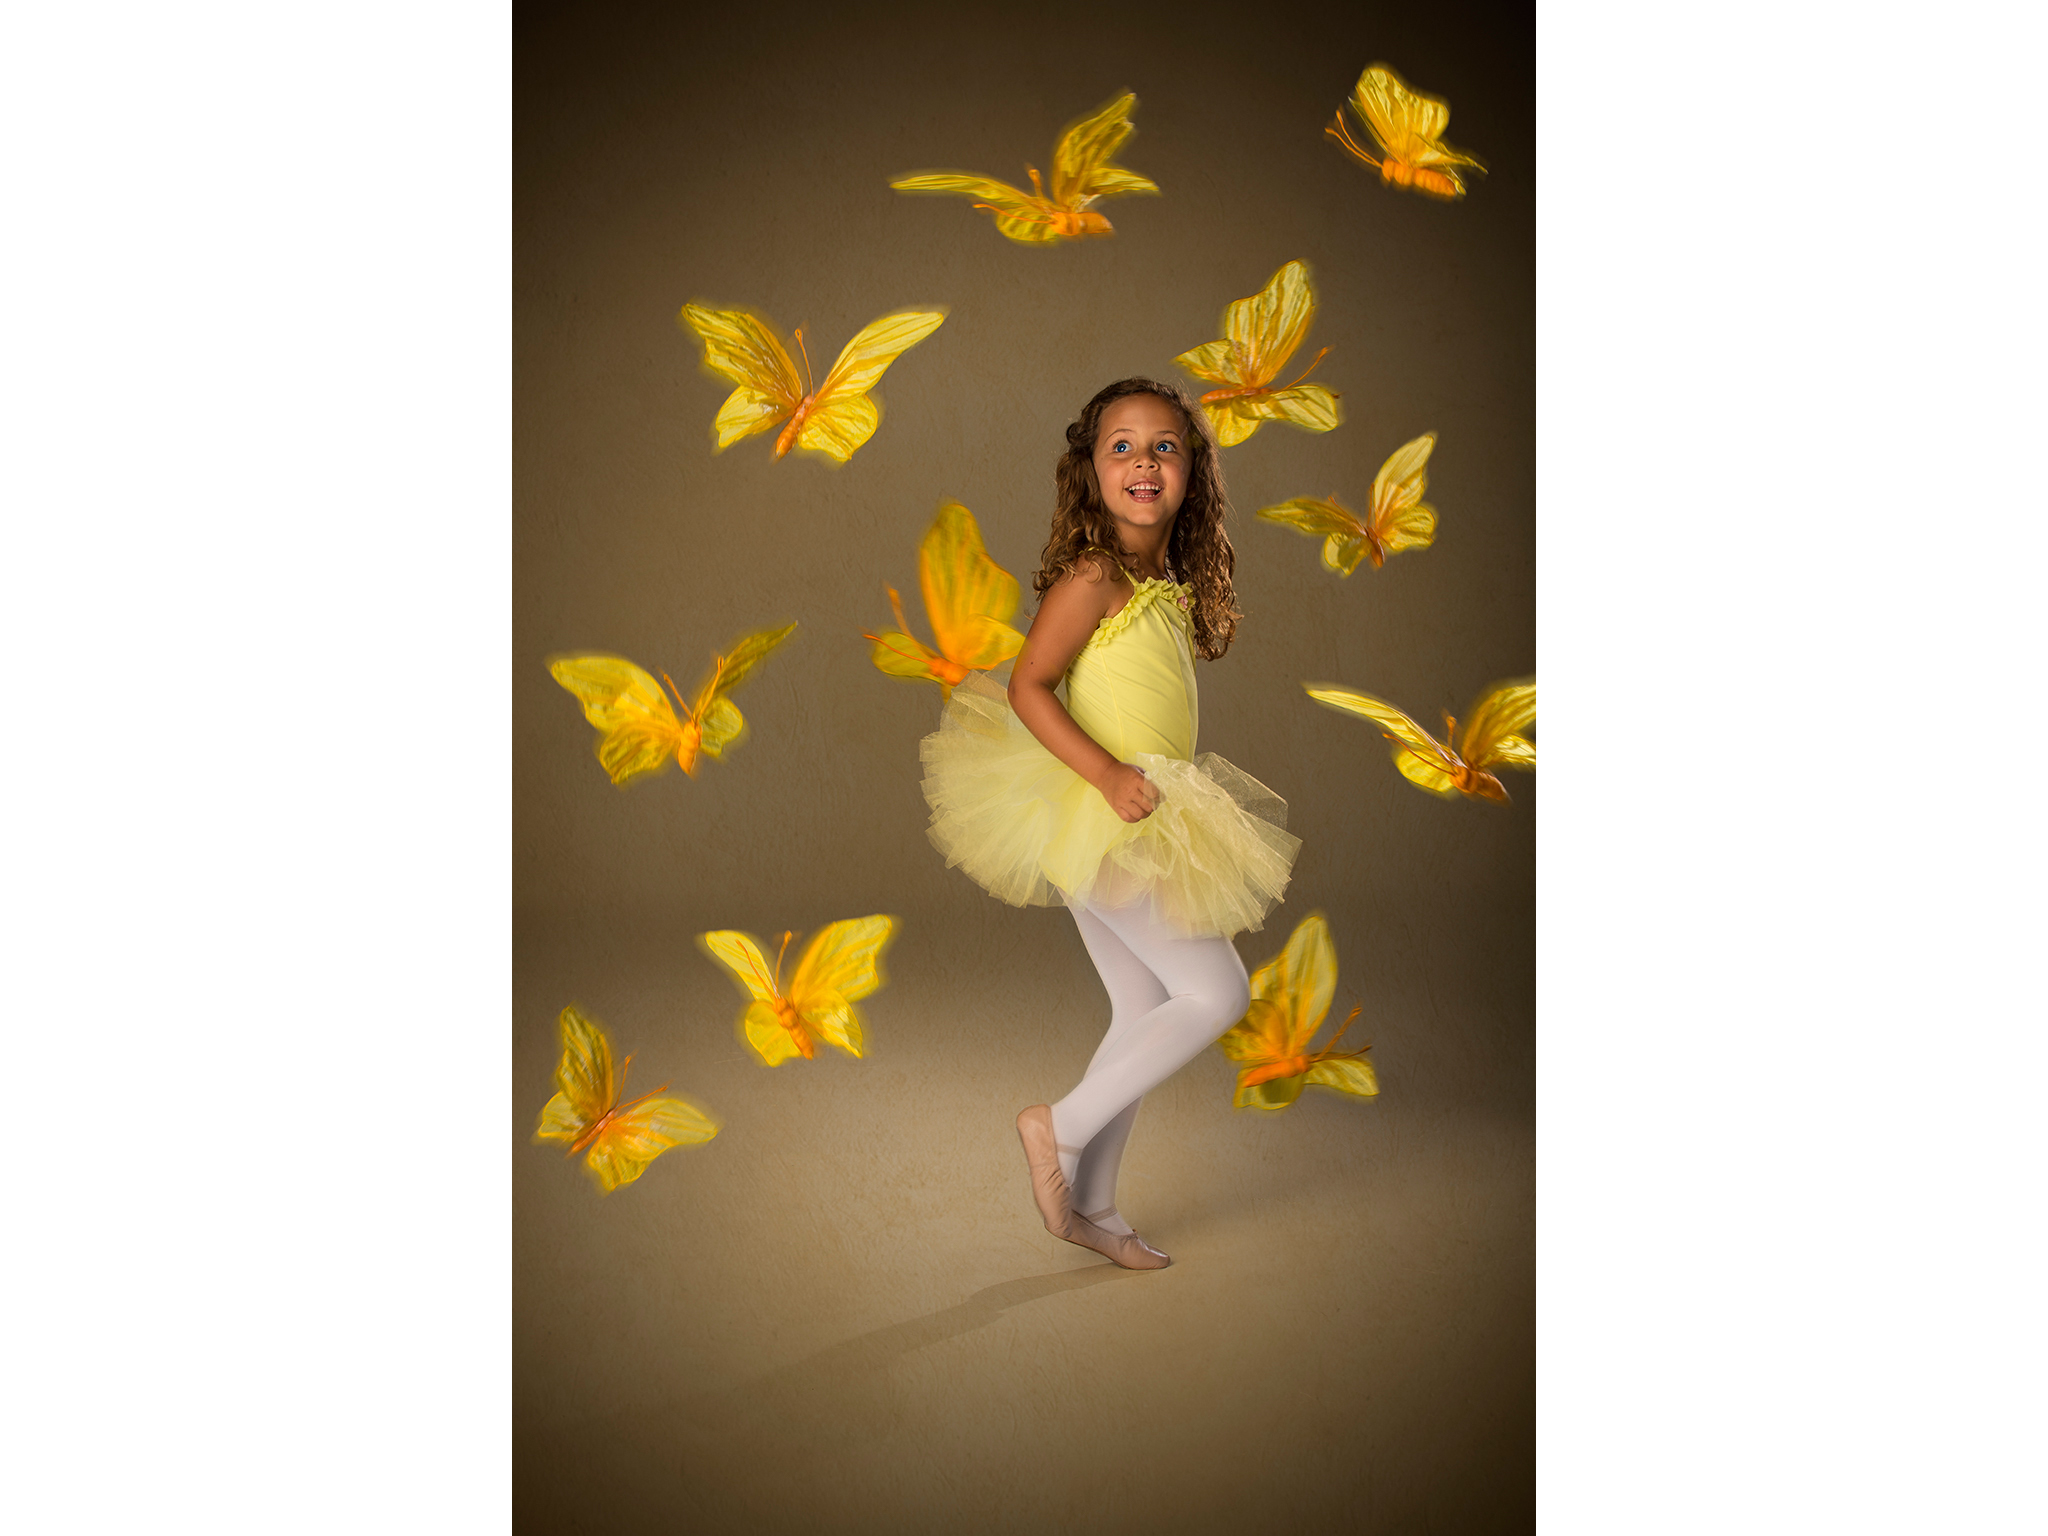 Young ballerina girl in yellow with floating butterflies